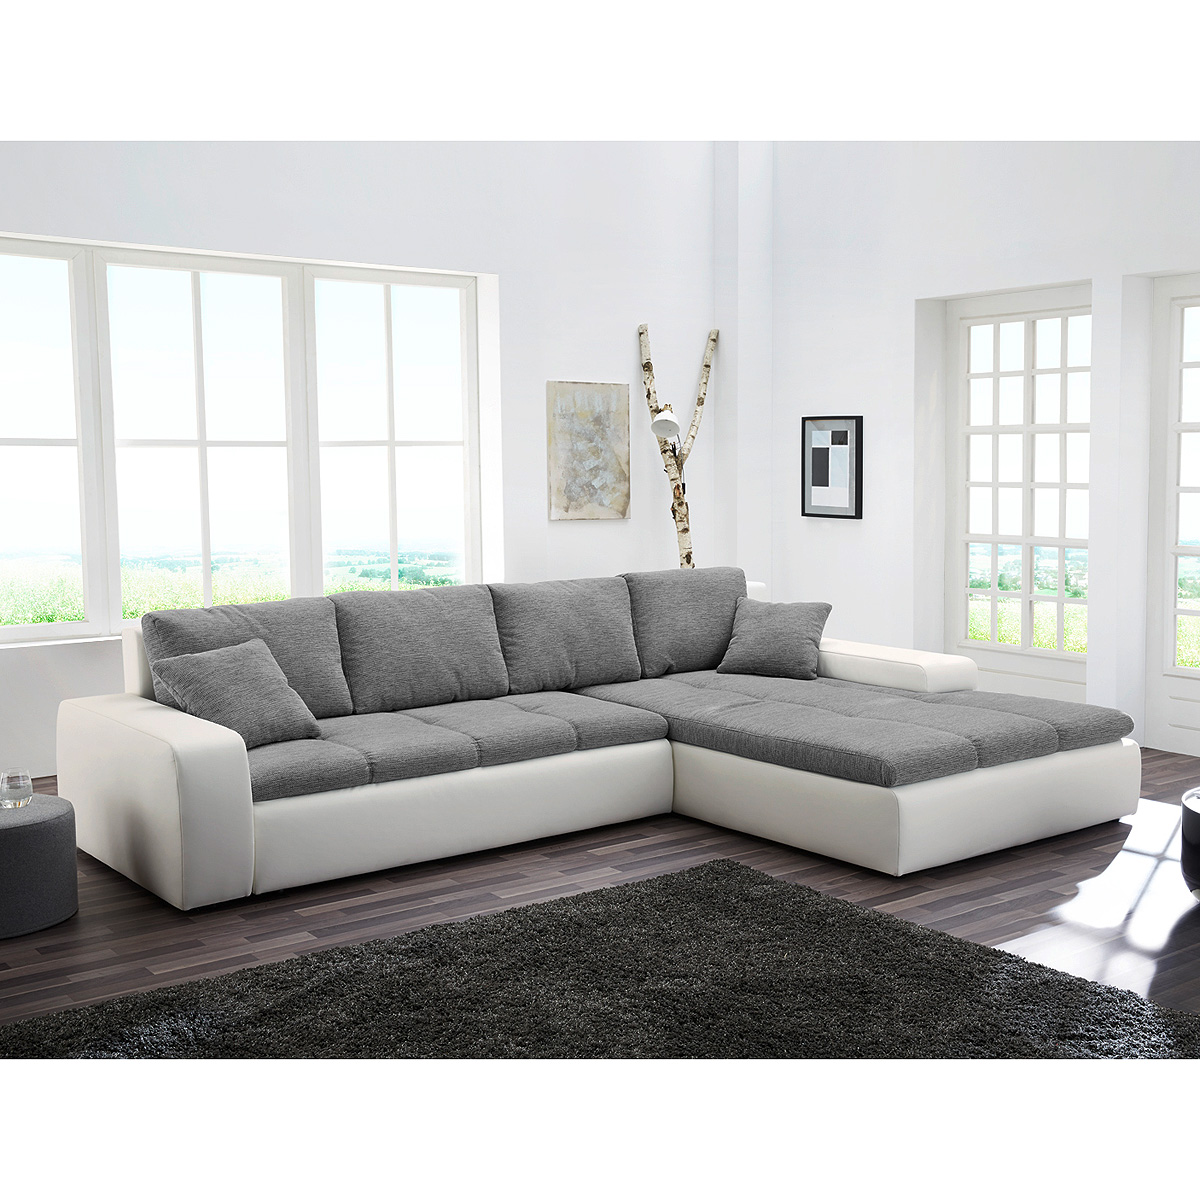 wohnlandschaft aurich ecksofa sofa in wei und grau mit bettfunktion ebay. Black Bedroom Furniture Sets. Home Design Ideas